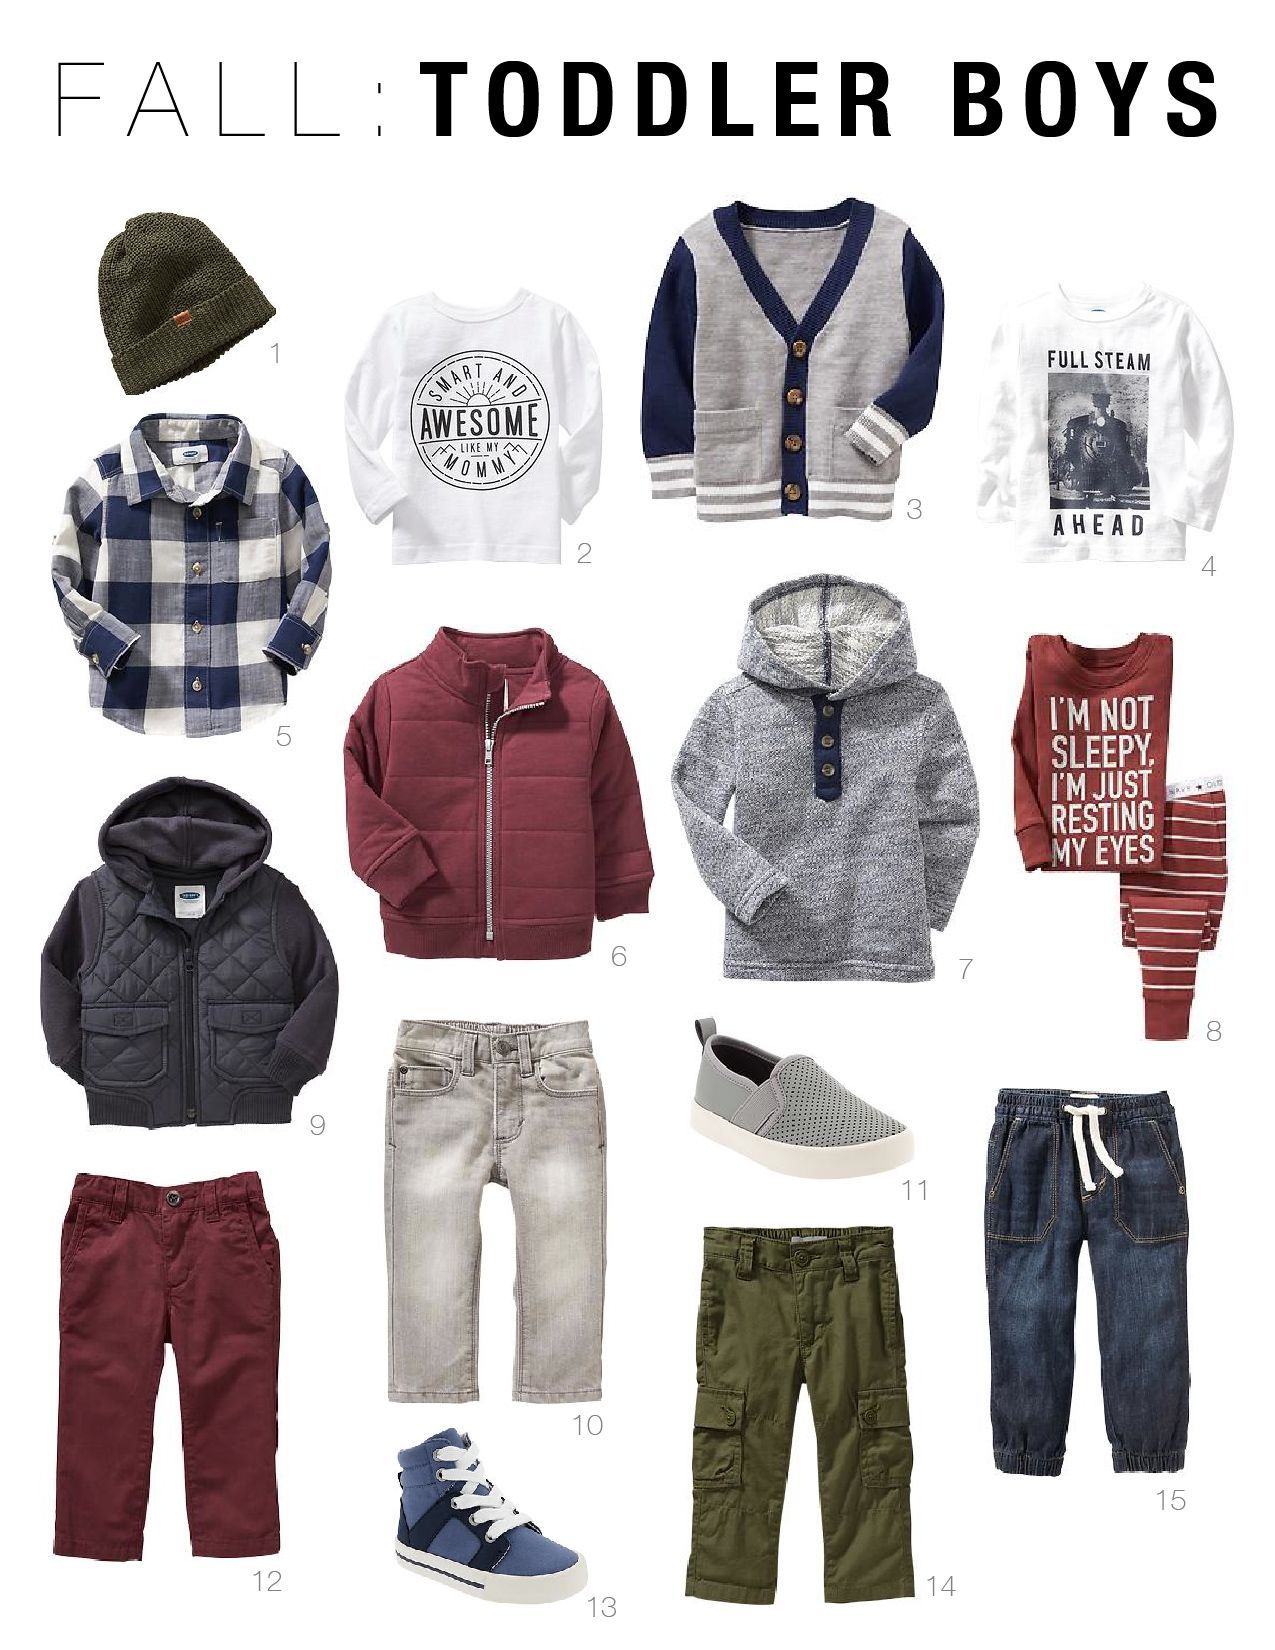 Toddler boy dress clothes for wedding  Make getting your toddler dressed easy this fall with mixnmatch